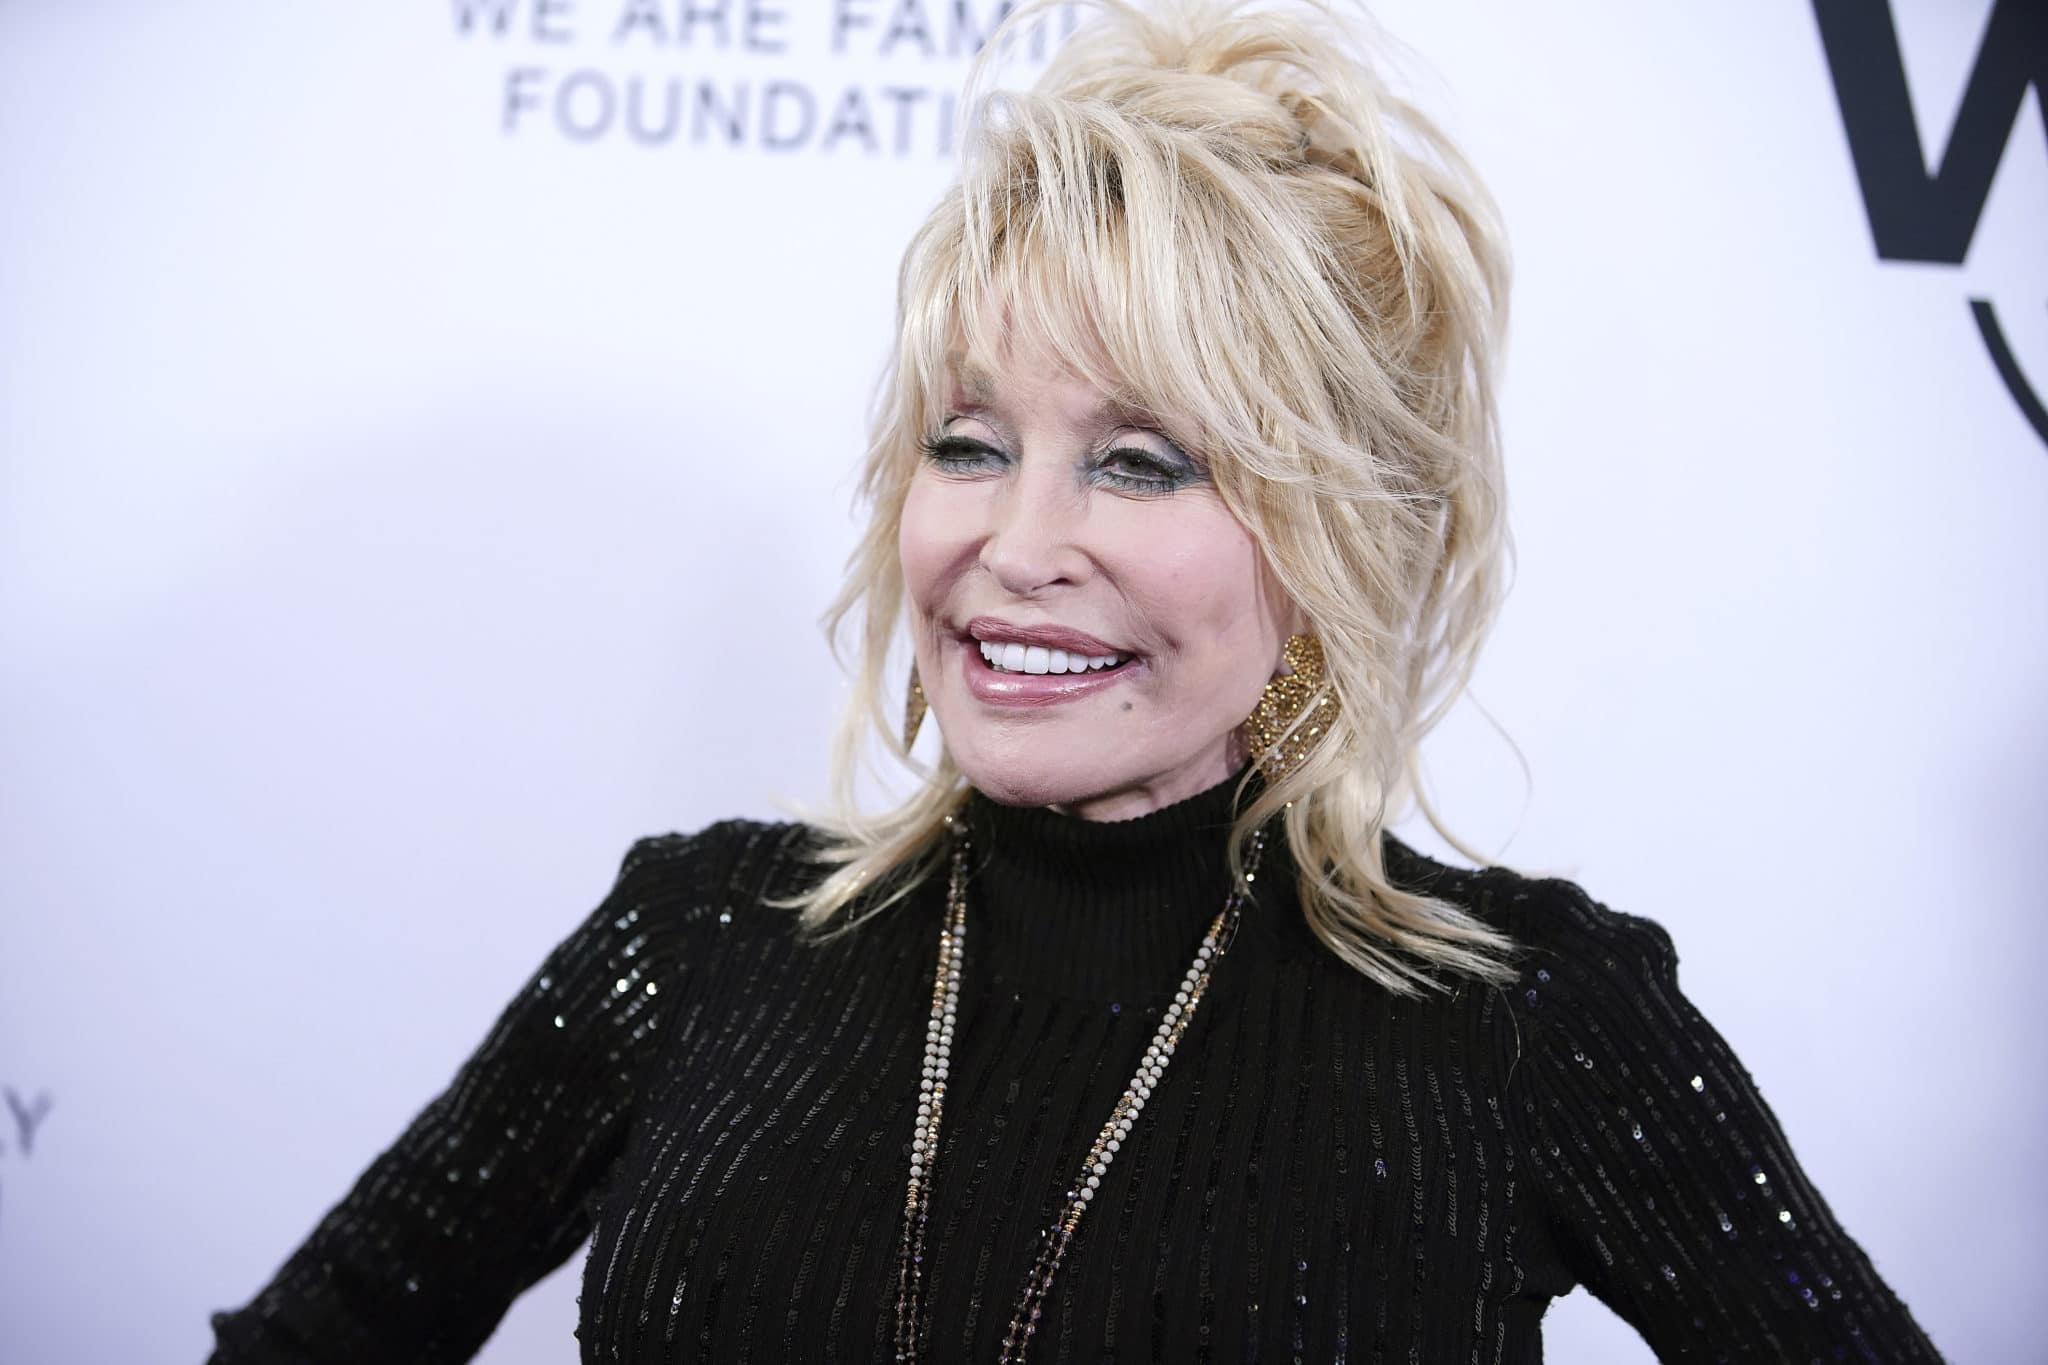 Obama said COVID vaccine hero Dolly Parton should get a presidential medal of freedom